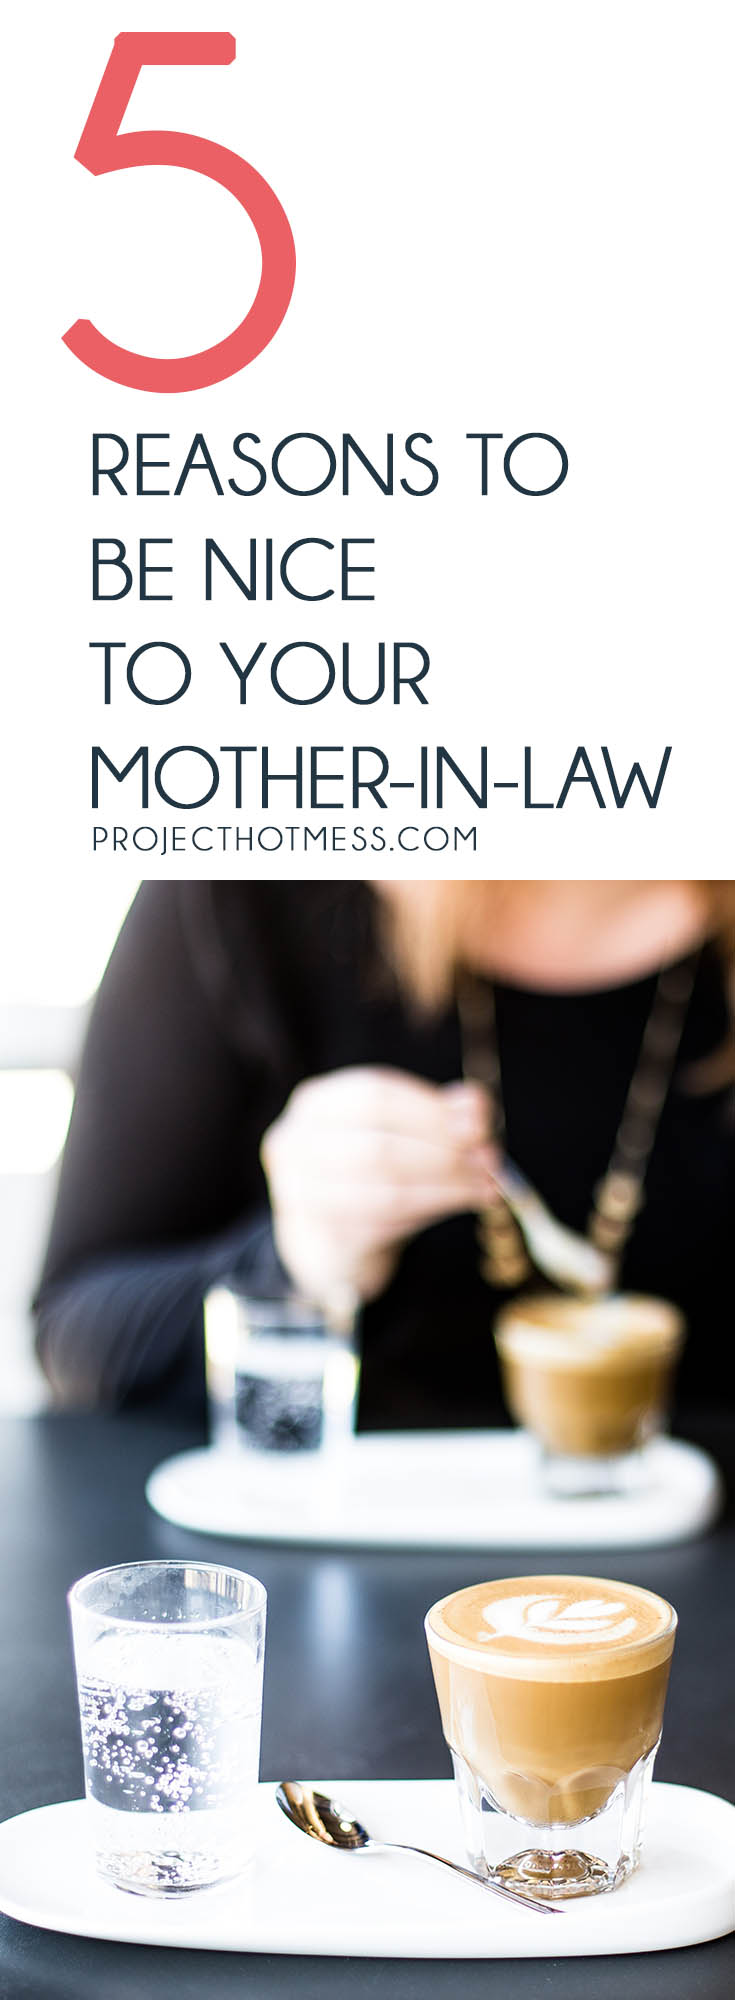 How many times have you heard mother-in-law horror stories? Most MIL's are great, and there's a lot of reasons why you should be nice to your mother-in-law. You could end up having an amazing relationship with her!